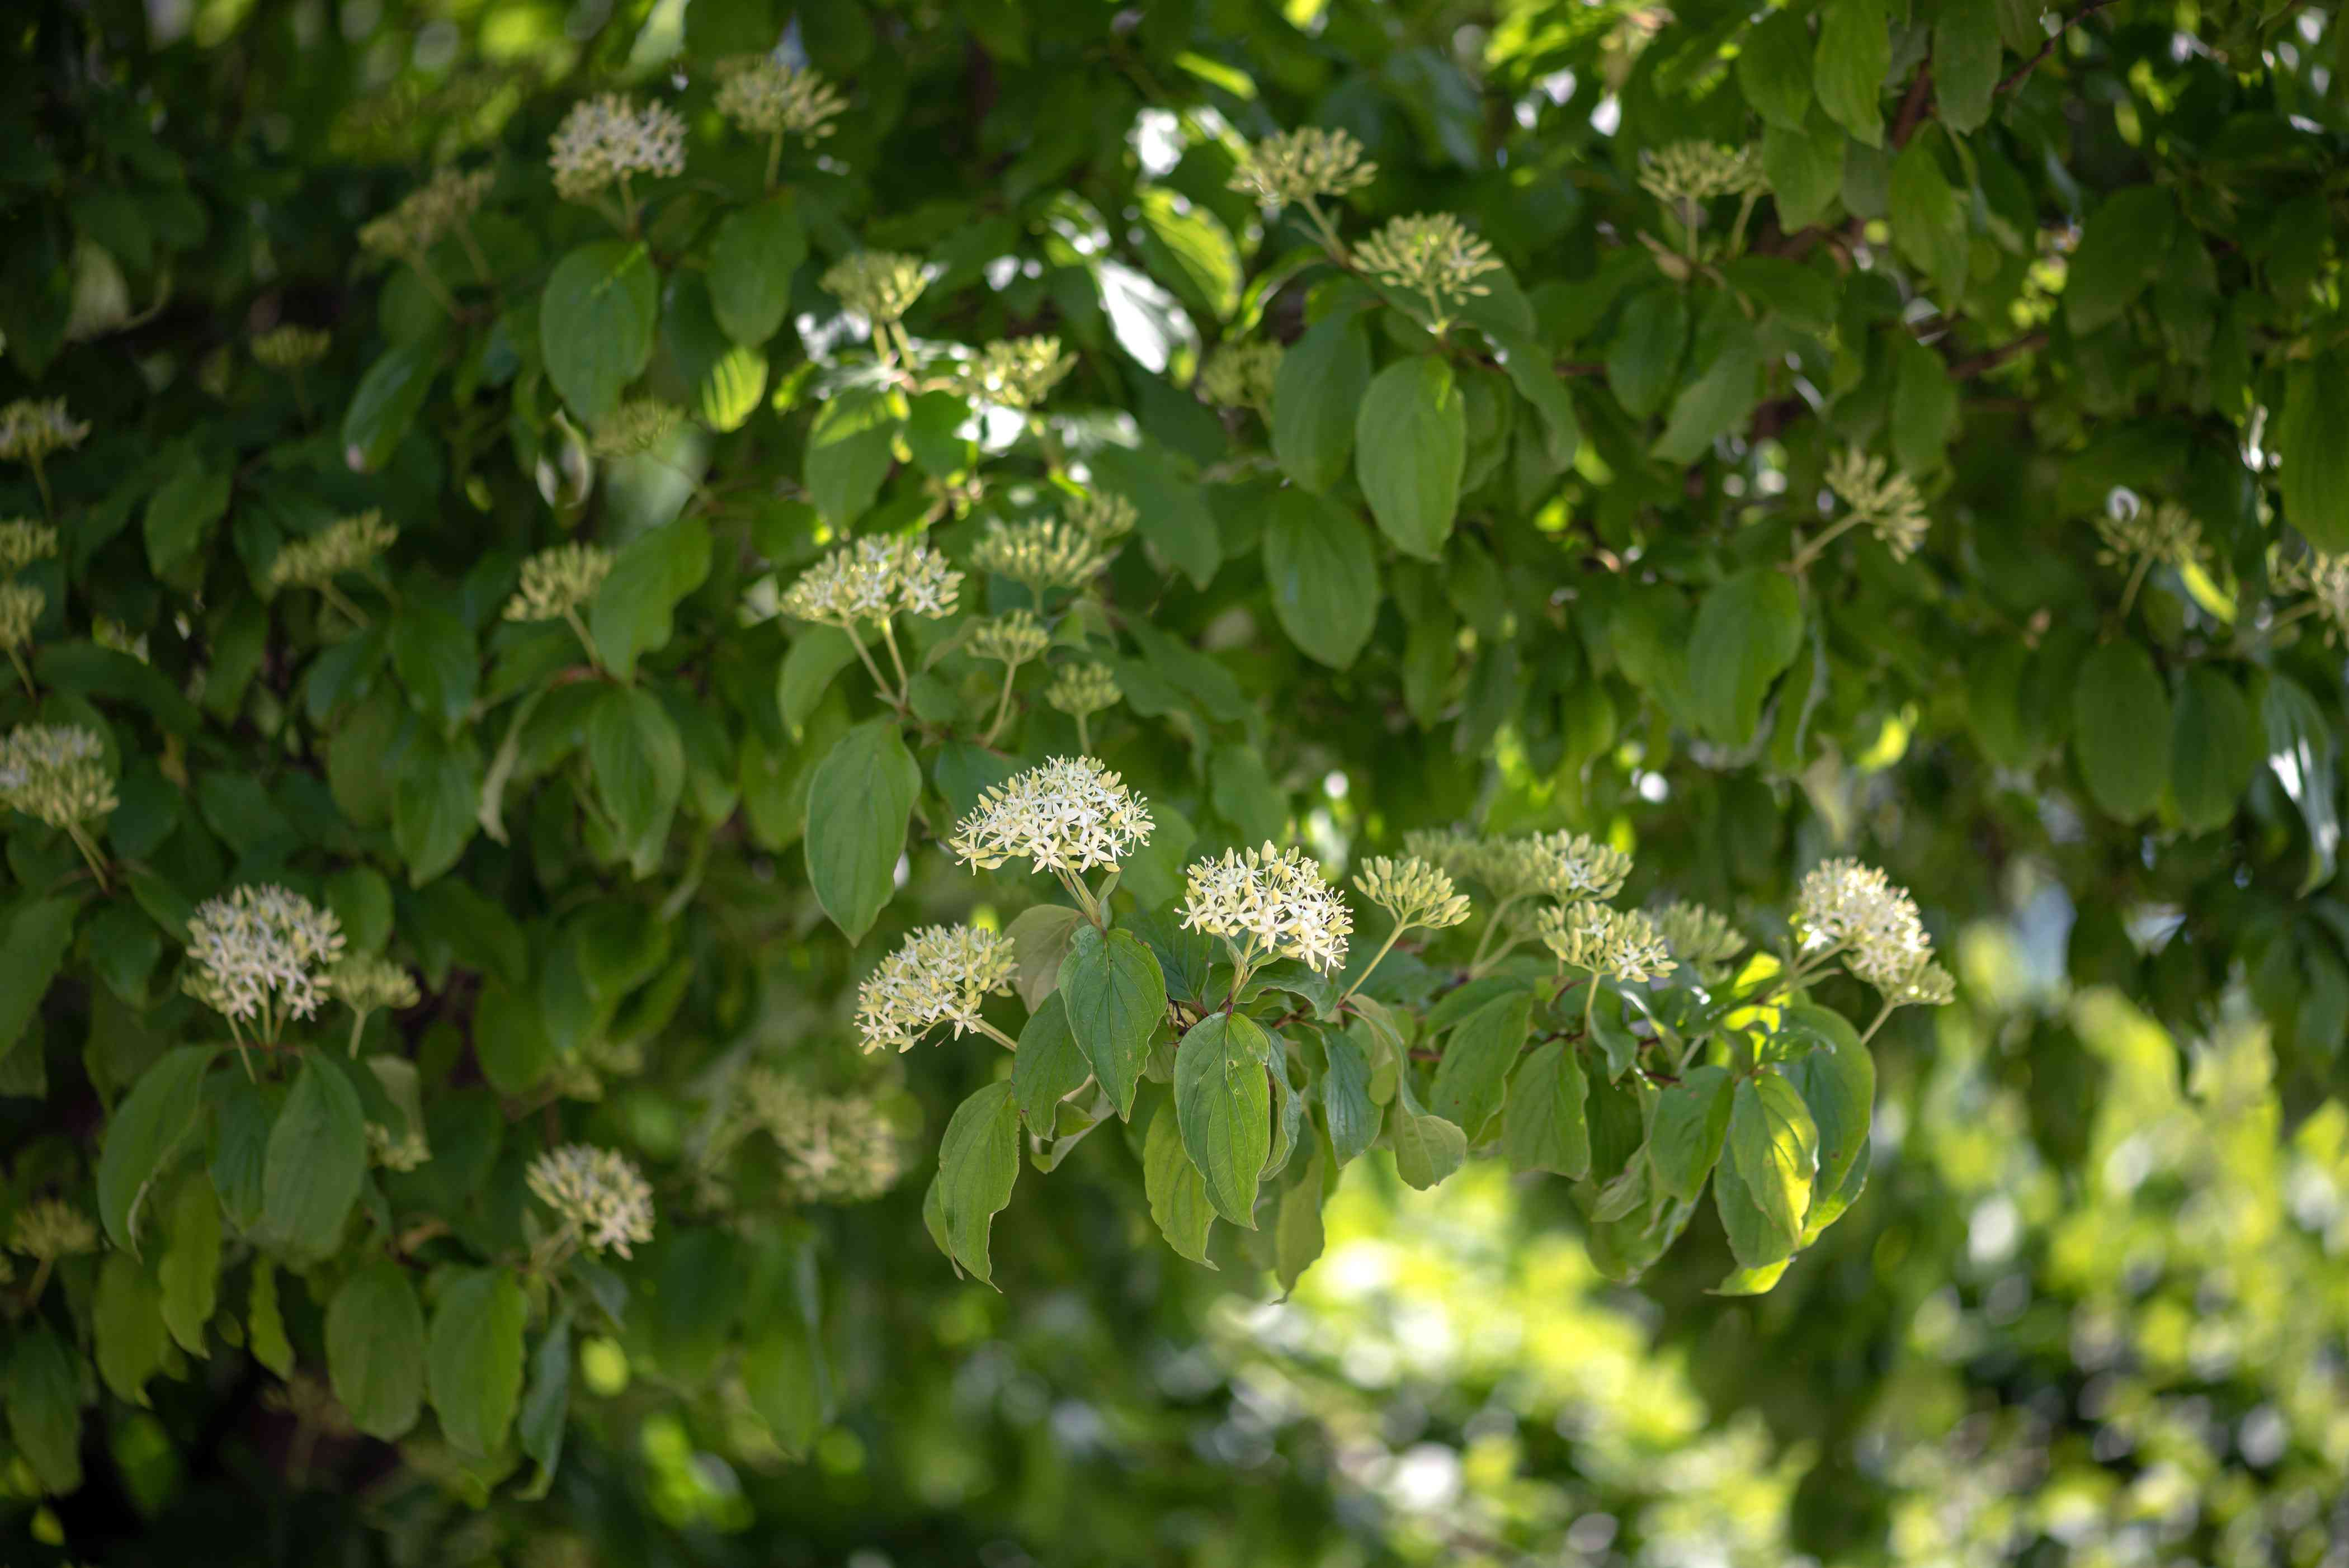 Silky dogwood shrub with large leaves and small white flower clusters on branches